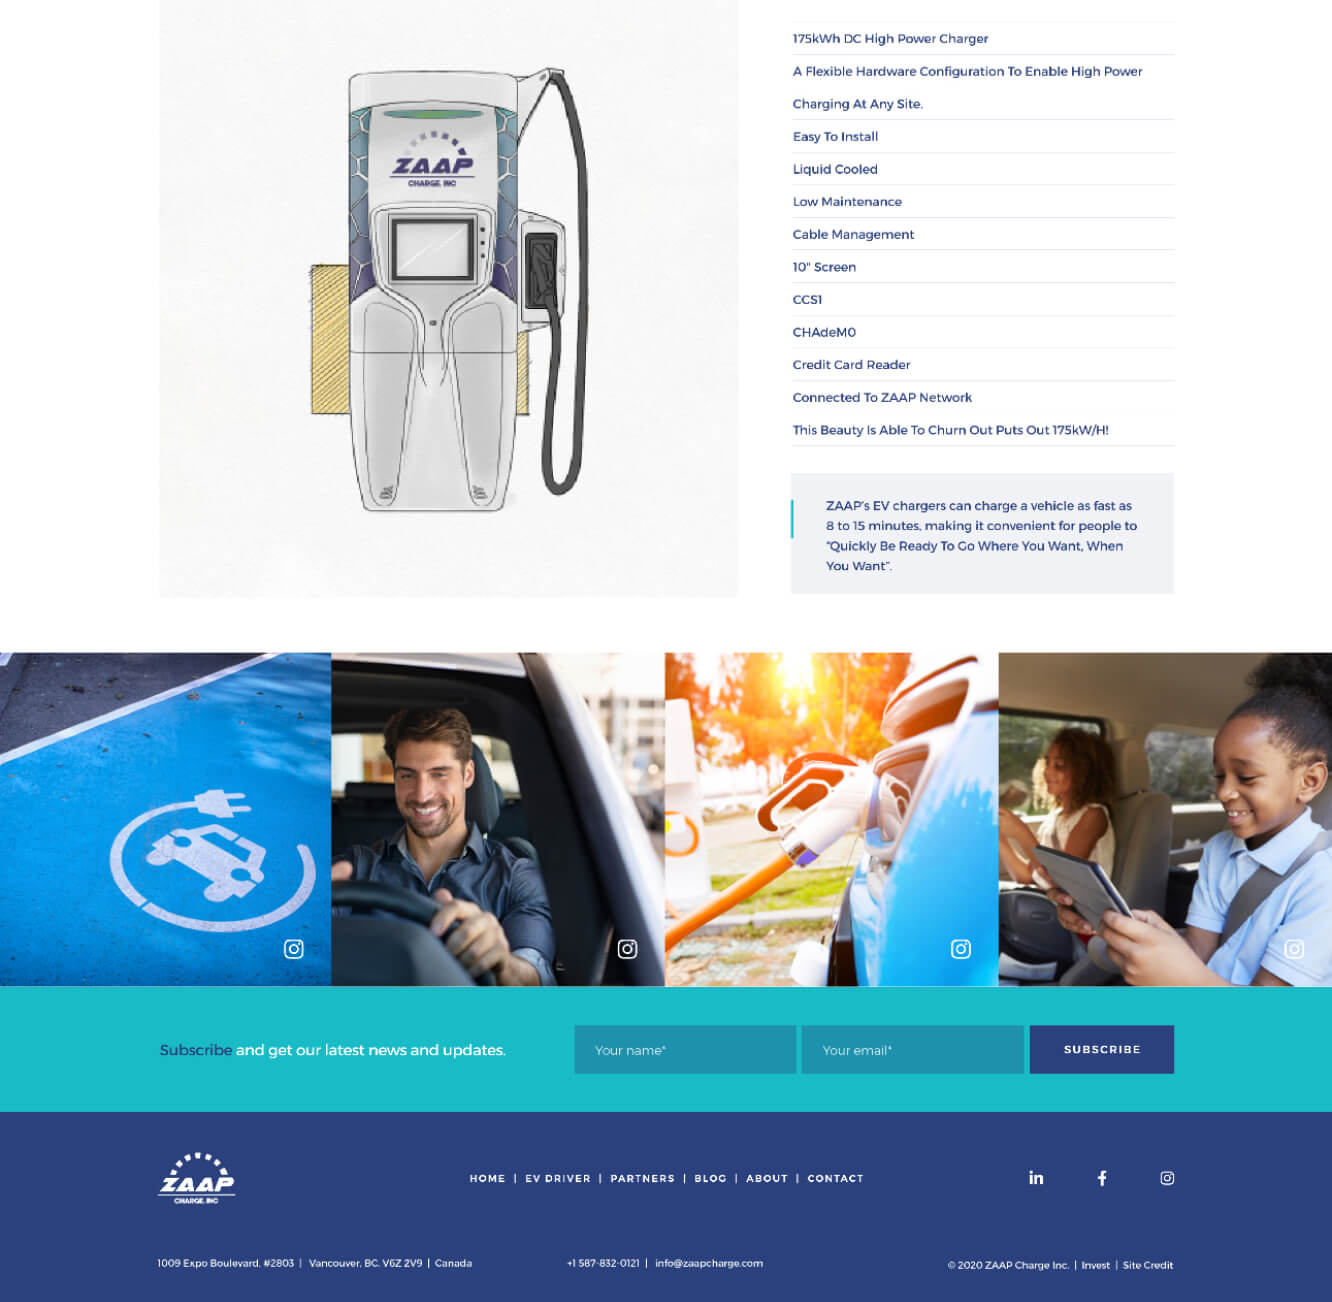 Zaap website screenshot showing the charging station and its technical details